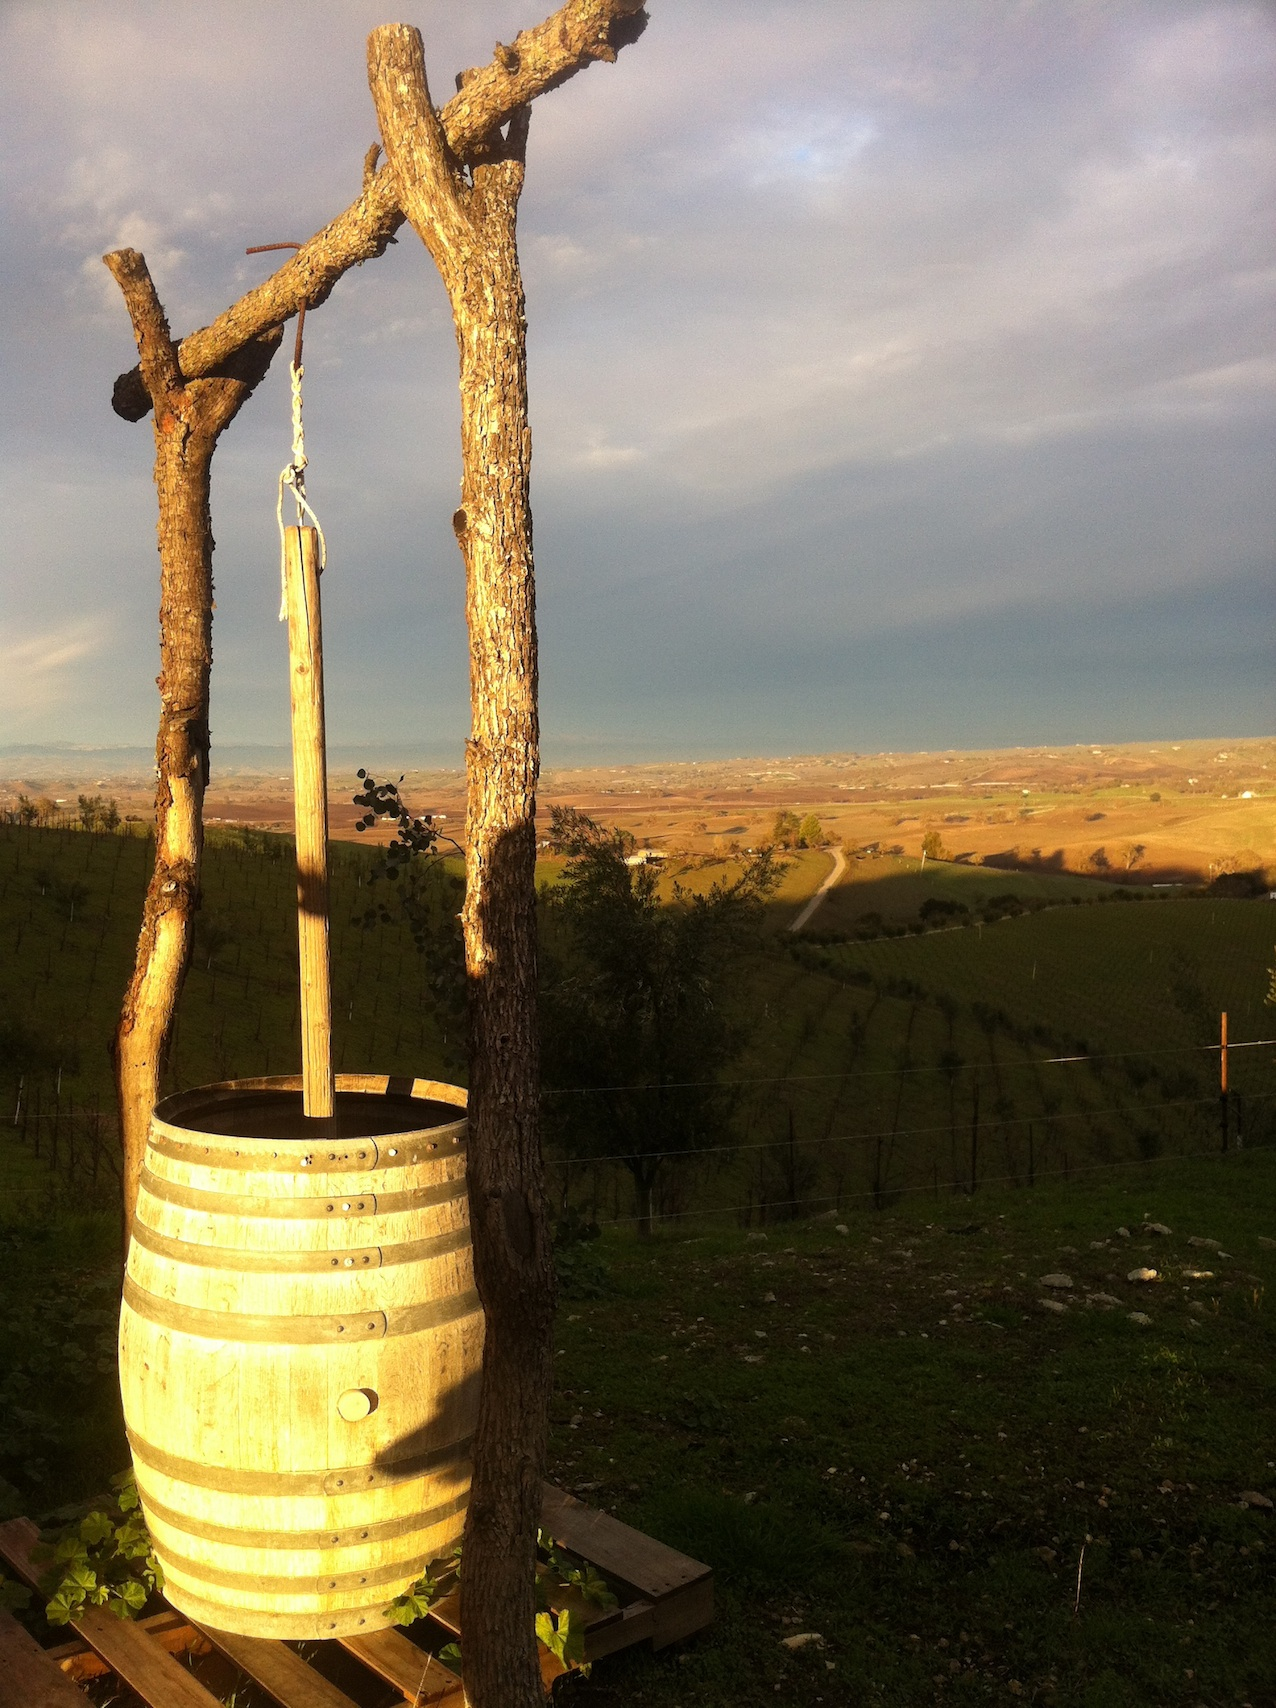 This barrel is used for preparing homeopathic treatments for the vines